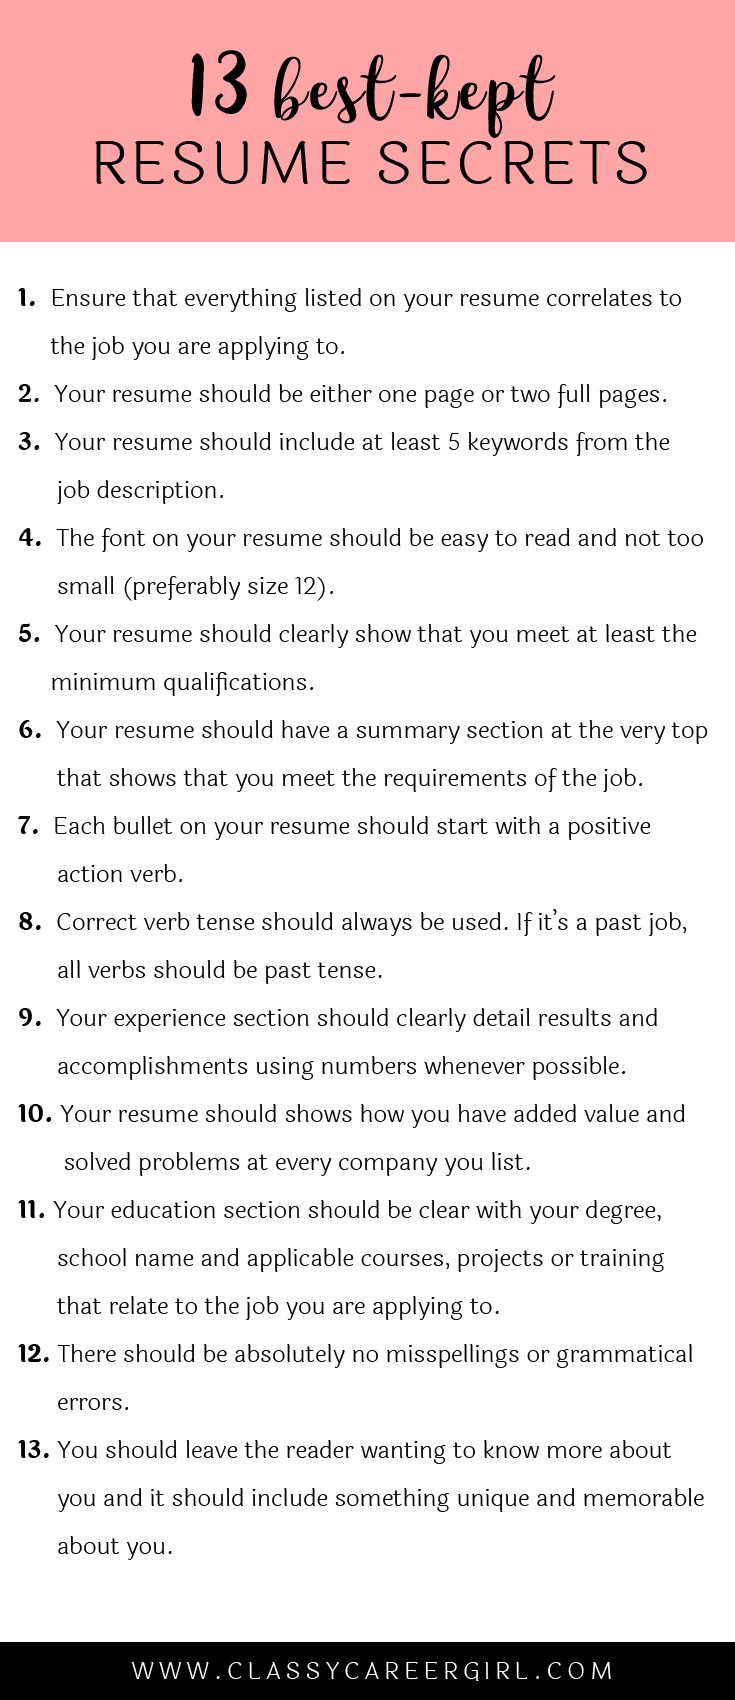 Opposenewapstandardsus  Scenic  Ideas About Resume On Pinterest  Cv Format Resume Cv And  With Exquisite Some Hiring Managers Will Toss Your Resume Out If You Dont Know These  With Delightful Define Resume Also Resume Cover Letter Examples In Addition How To Build A Resume And Resume Example As Well As Resume Skills Additionally Skills For Resume From Pinterestcom With Opposenewapstandardsus  Exquisite  Ideas About Resume On Pinterest  Cv Format Resume Cv And  With Delightful Some Hiring Managers Will Toss Your Resume Out If You Dont Know These  And Scenic Define Resume Also Resume Cover Letter Examples In Addition How To Build A Resume From Pinterestcom